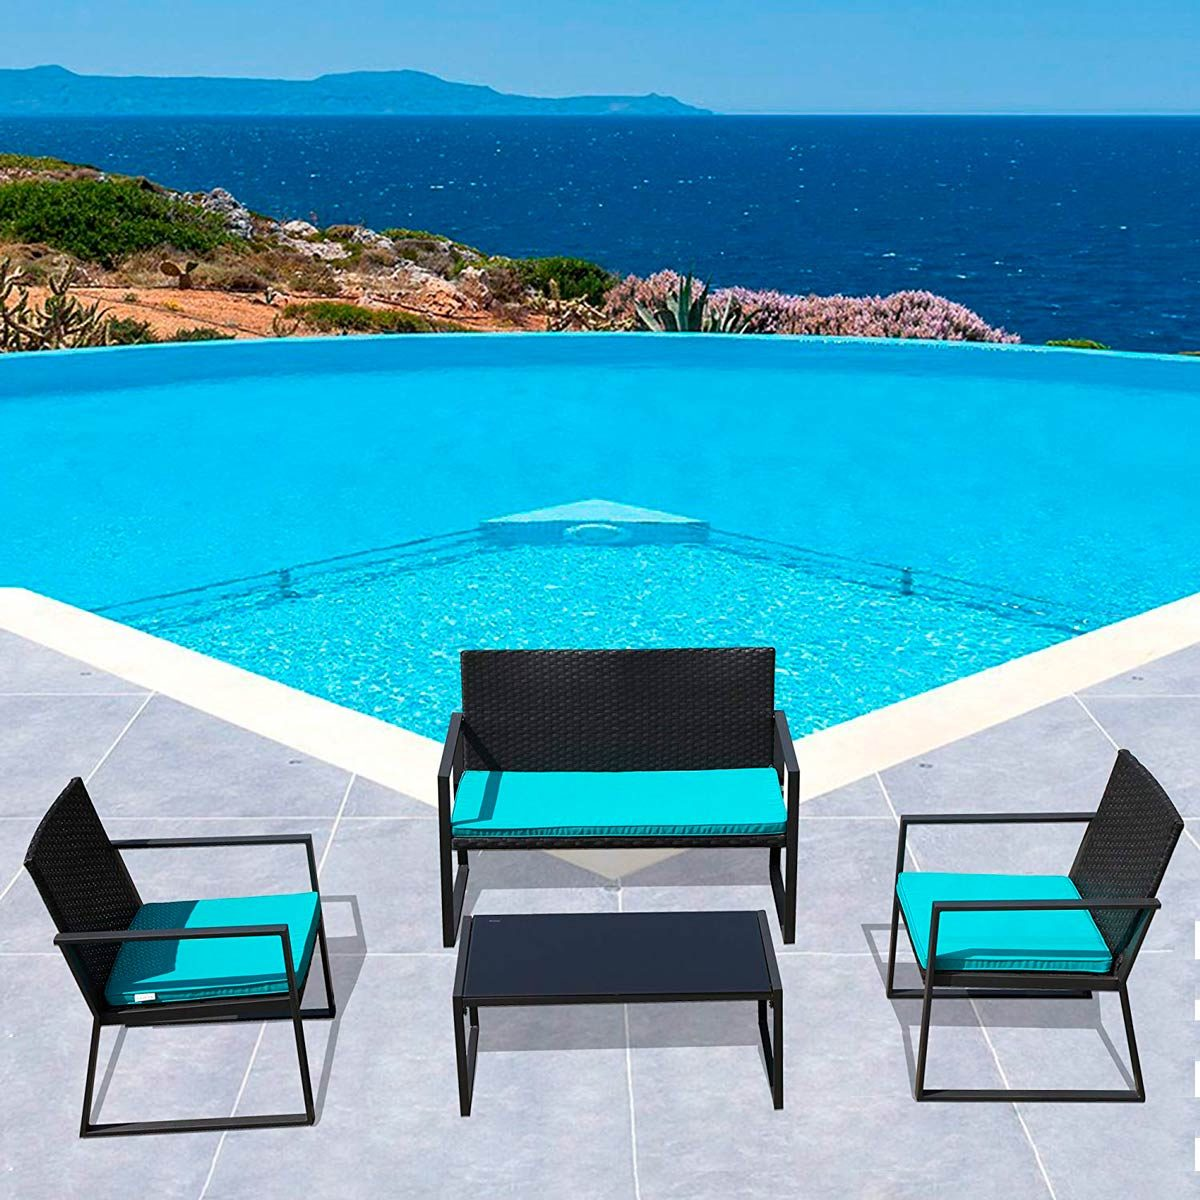 Fine Amazon Patio Furniture Were Buying This Month Family Download Free Architecture Designs Embacsunscenecom